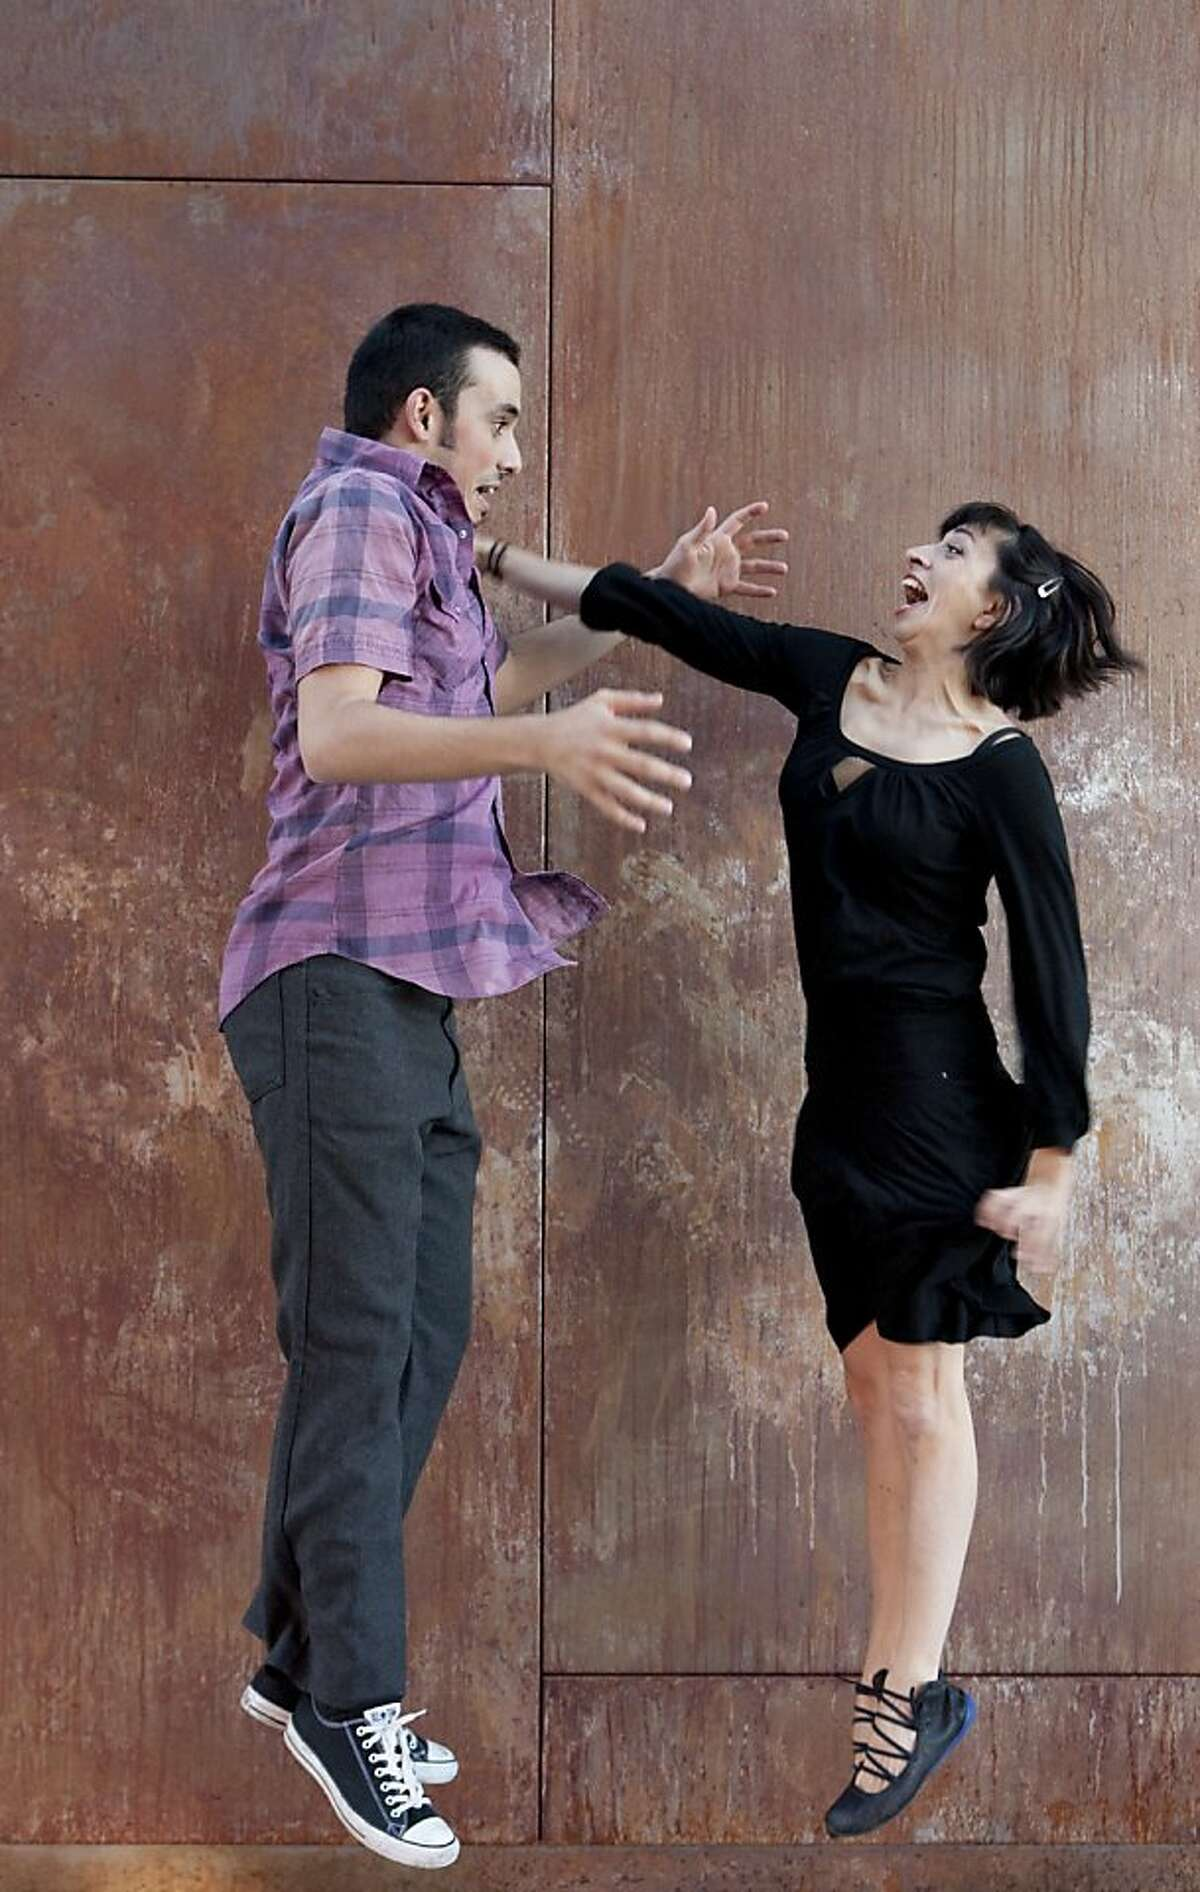 13th Floor dancers Eric Garcia and Christine Bonansea will perform at RAWdance's Concept series 9.